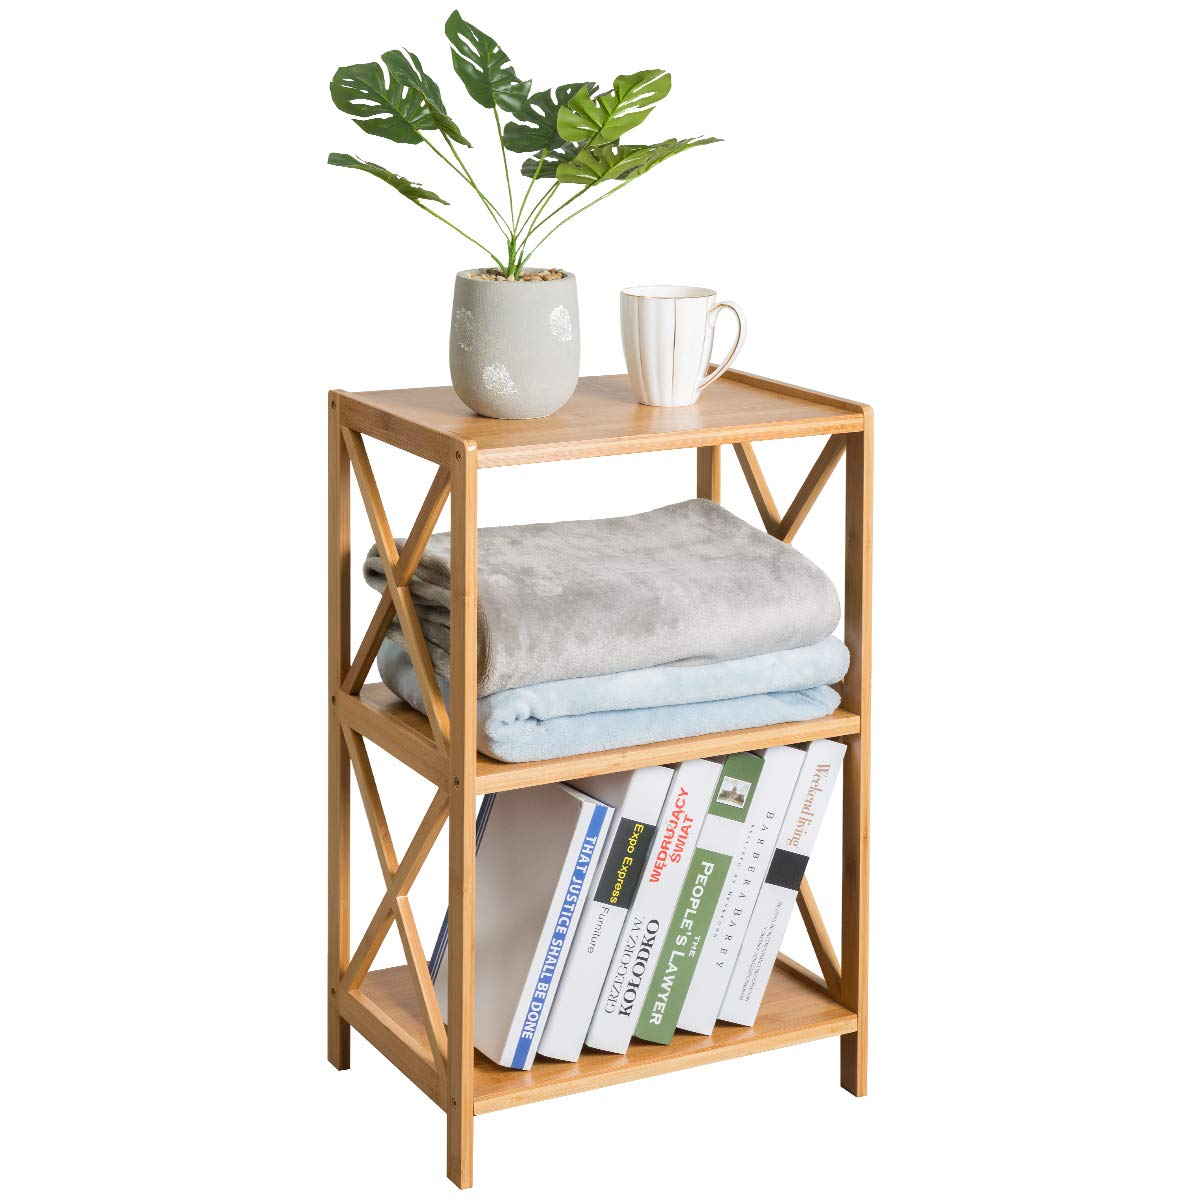 HollyHOME 3 Tier 100% Bamboo Bathroom Kitchen Living Room Shelf, Plant and Flowers Stand Utility Storage Shelf,Multifunctional Storage Rack Shelving Unit End Table, 16.38''x11.63''x25.51'' by HollyHOME (Image #3)